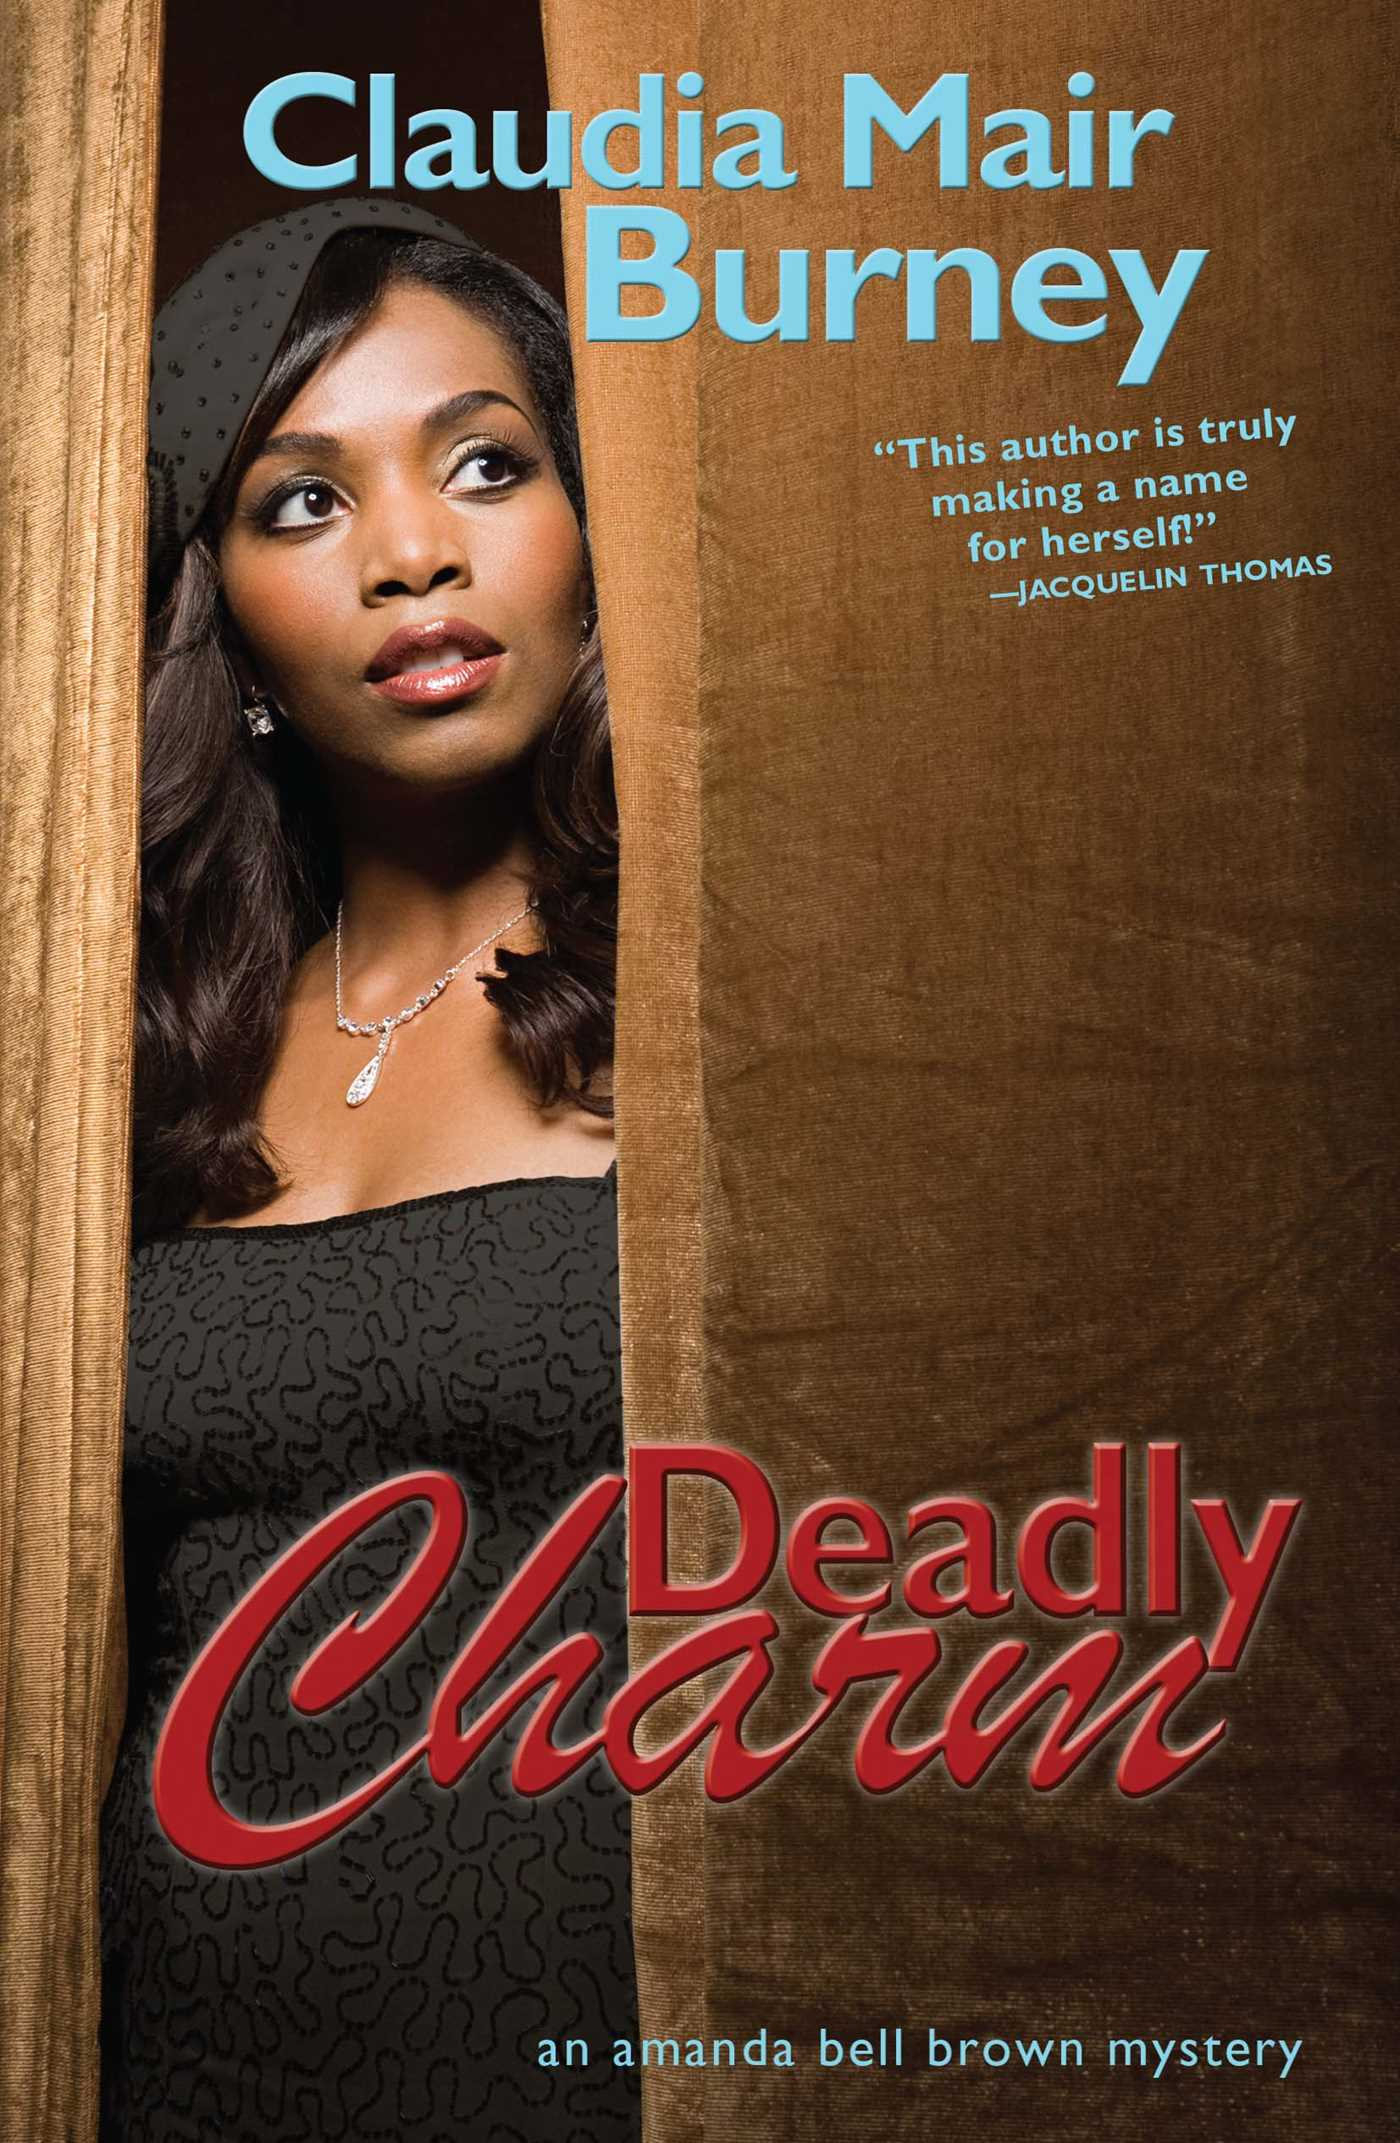 Deadly-charm-9781416551959_hr